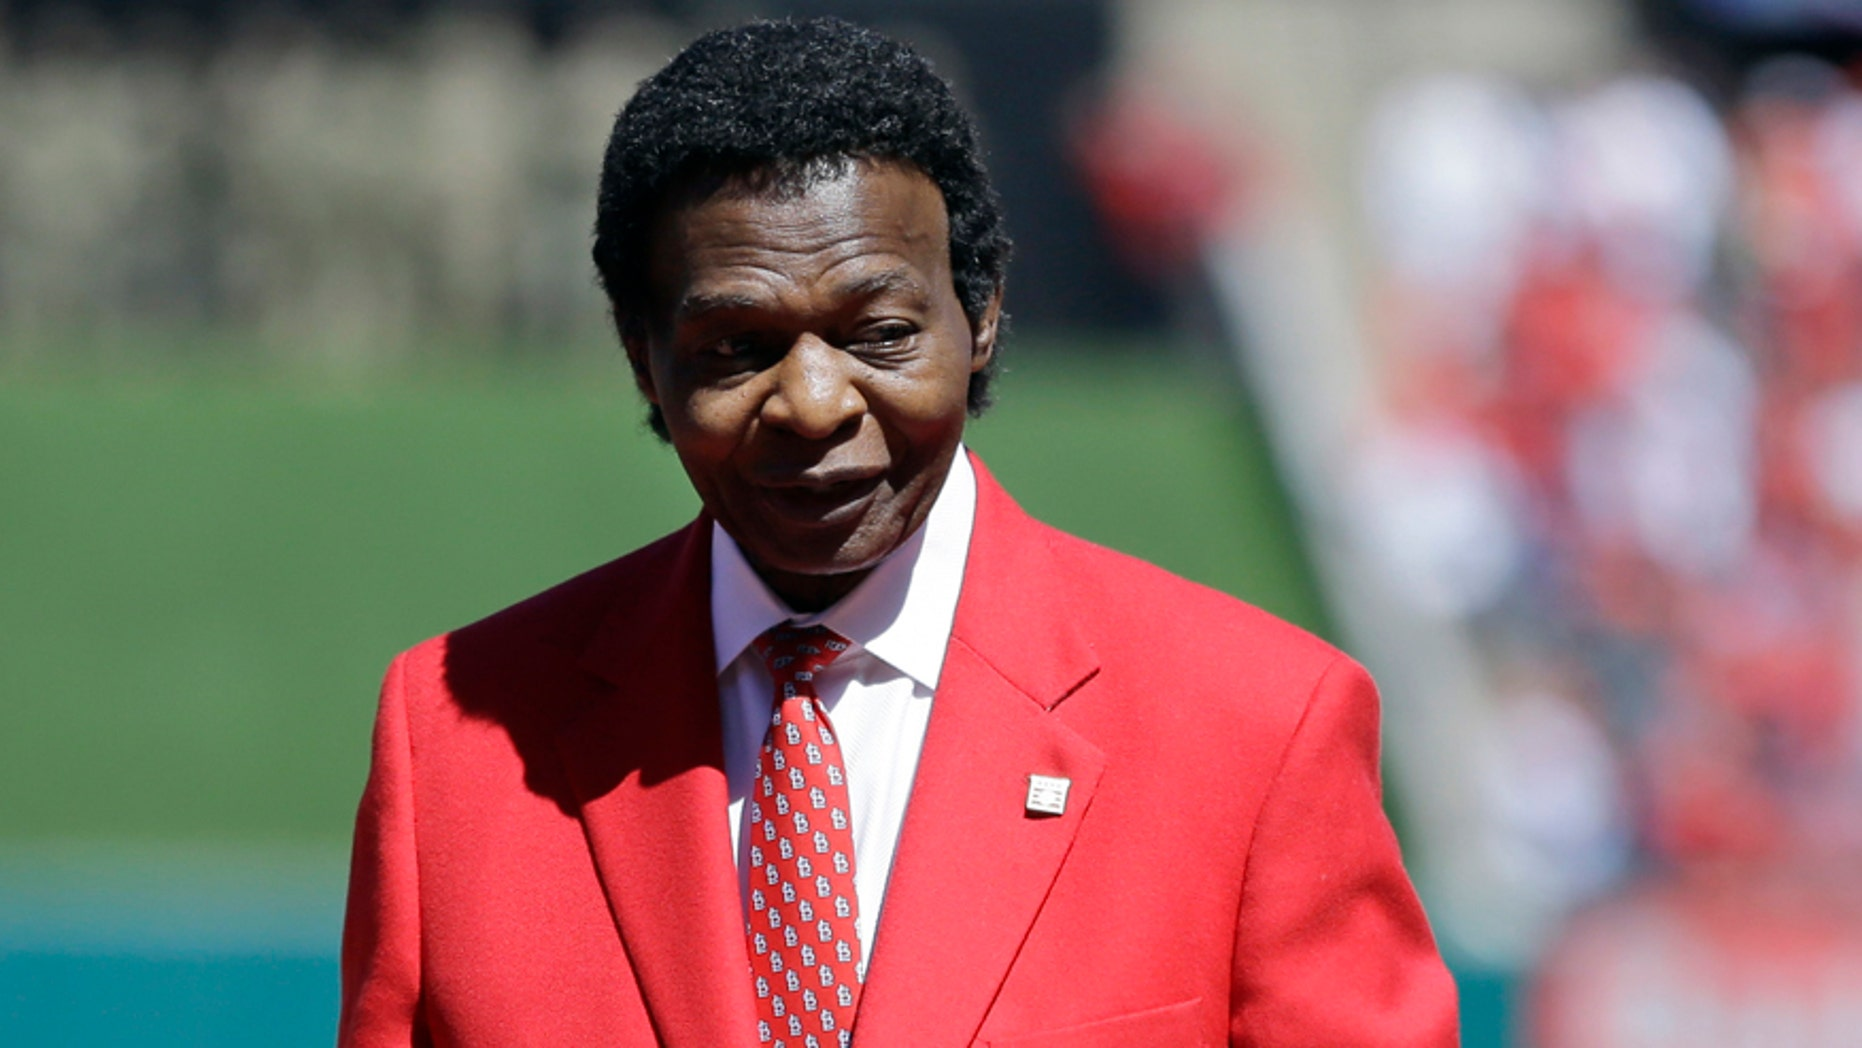 April 11, 2017: This file photo shows former St. Louis Cardinals great Lou Brock being introduced before the start a baseball game between the St. Louis Cardinals and the Milwaukee Brewers.